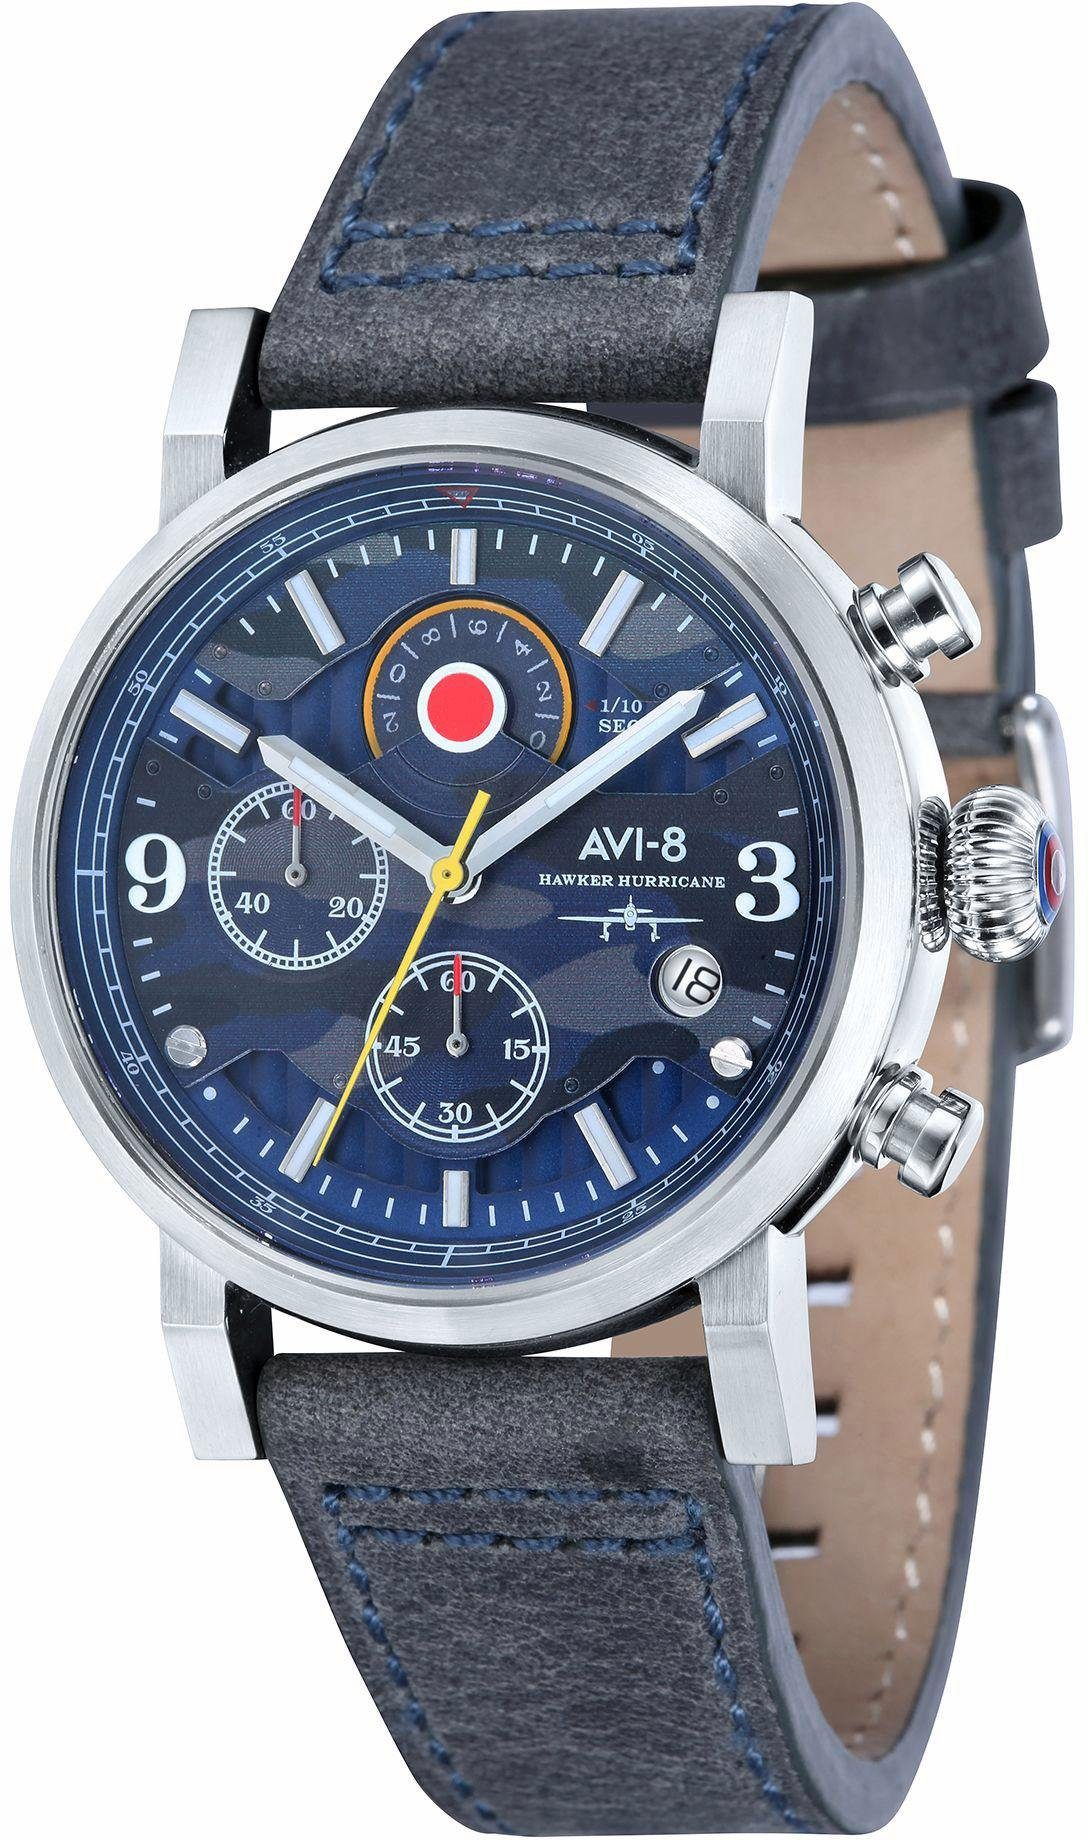 AVI-8 Chronograph »Hawker Hurricane, AV-4041-07«